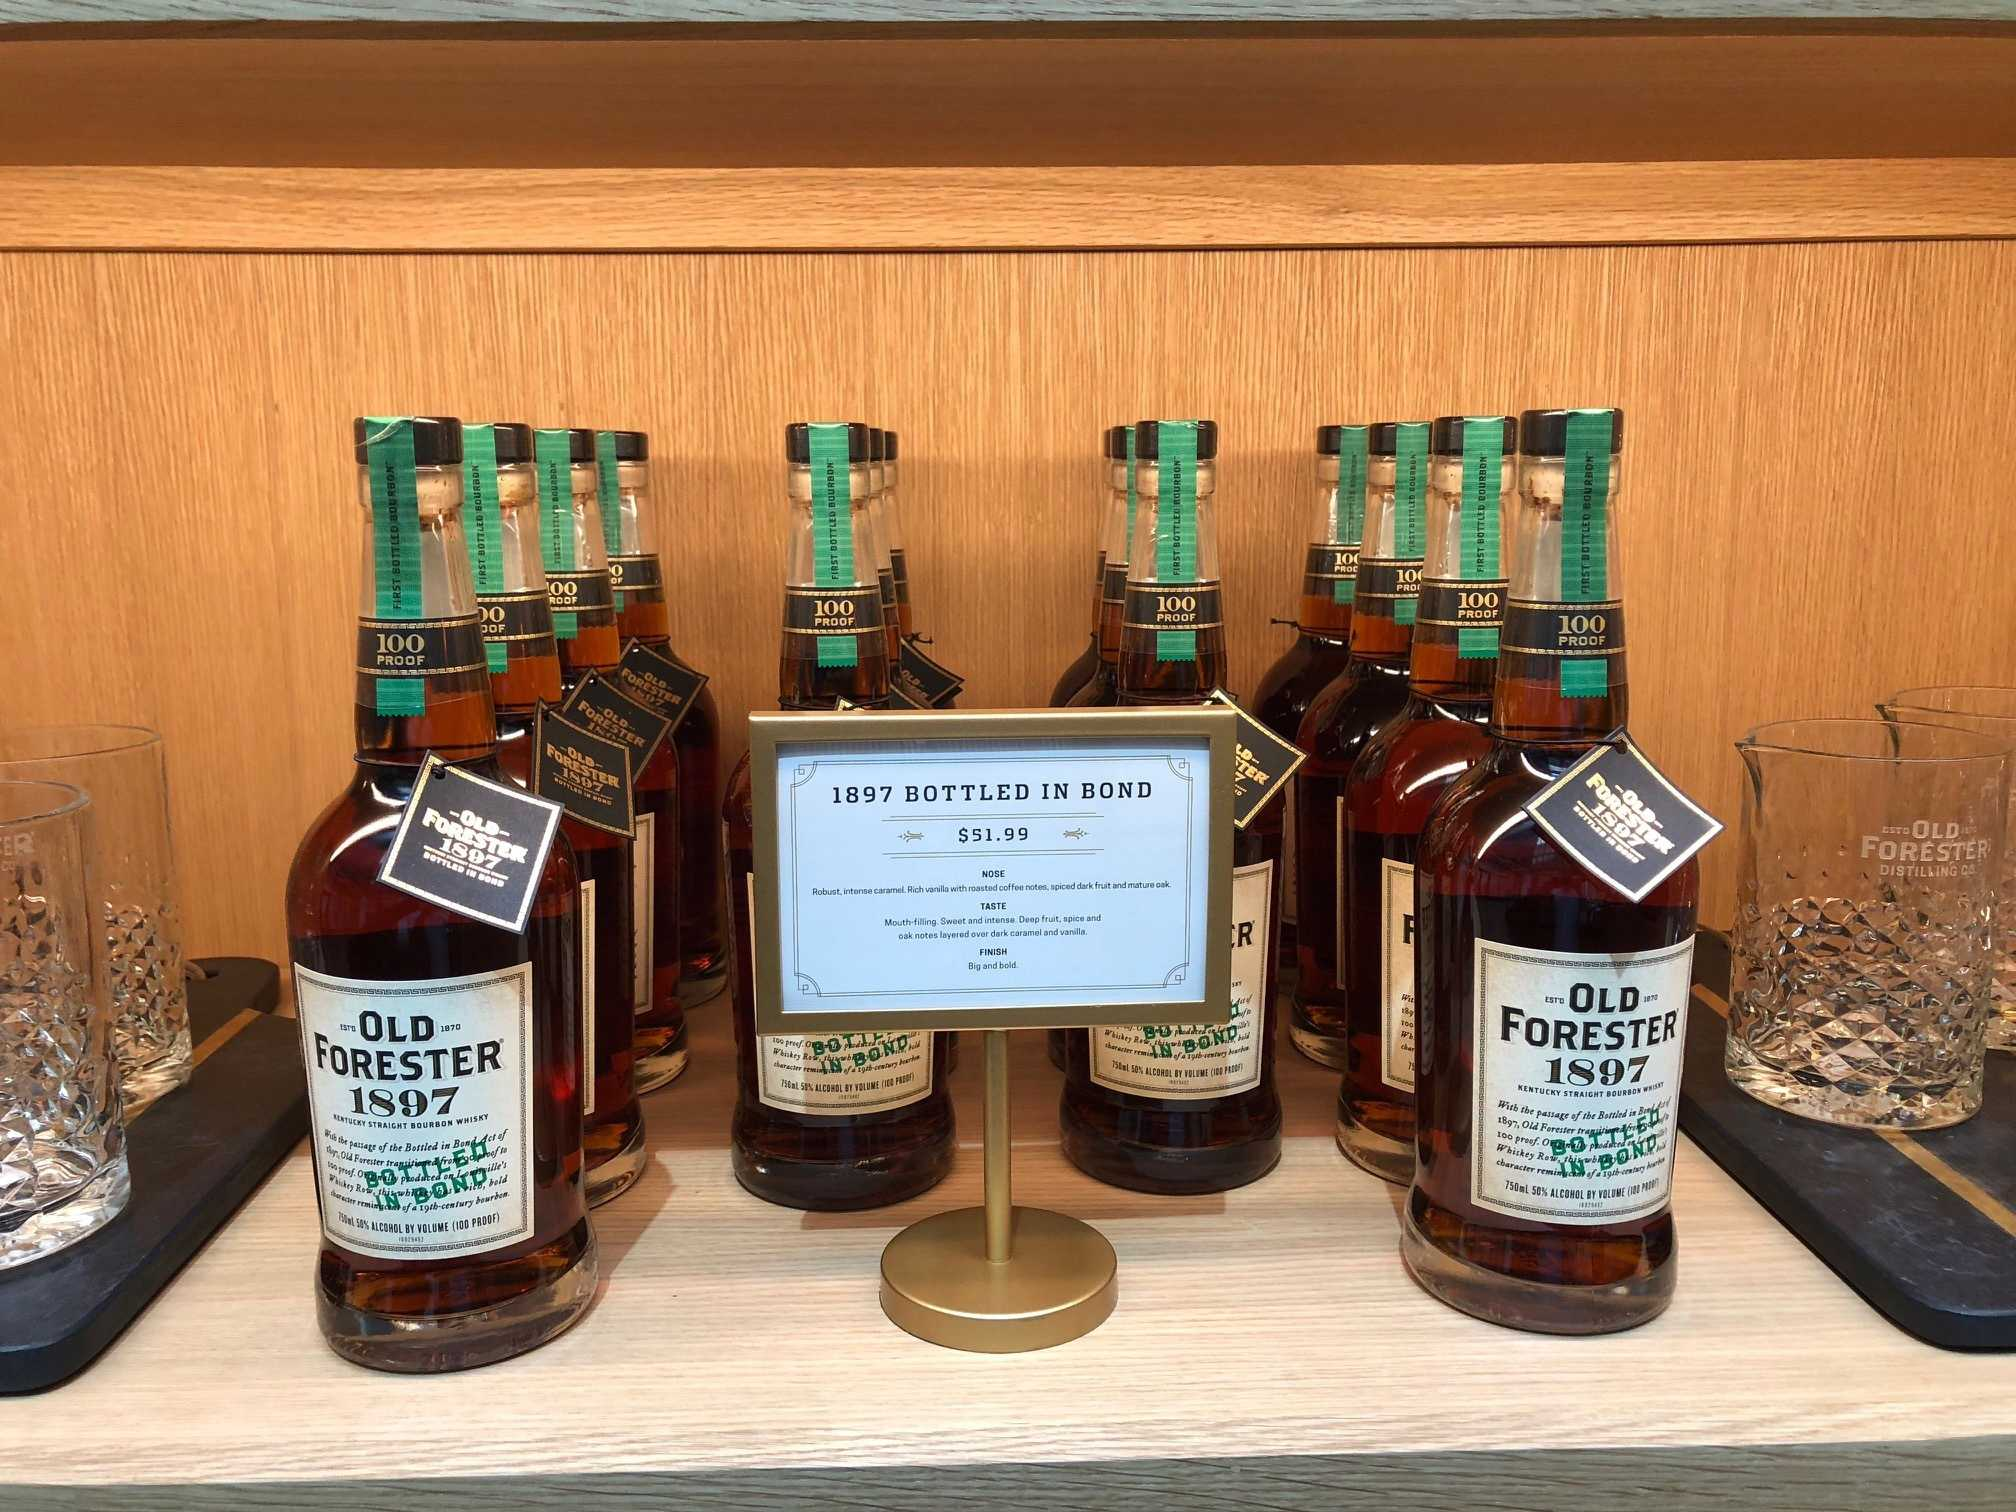 Old Forester Returns to Kentucky Roots with New Distillery